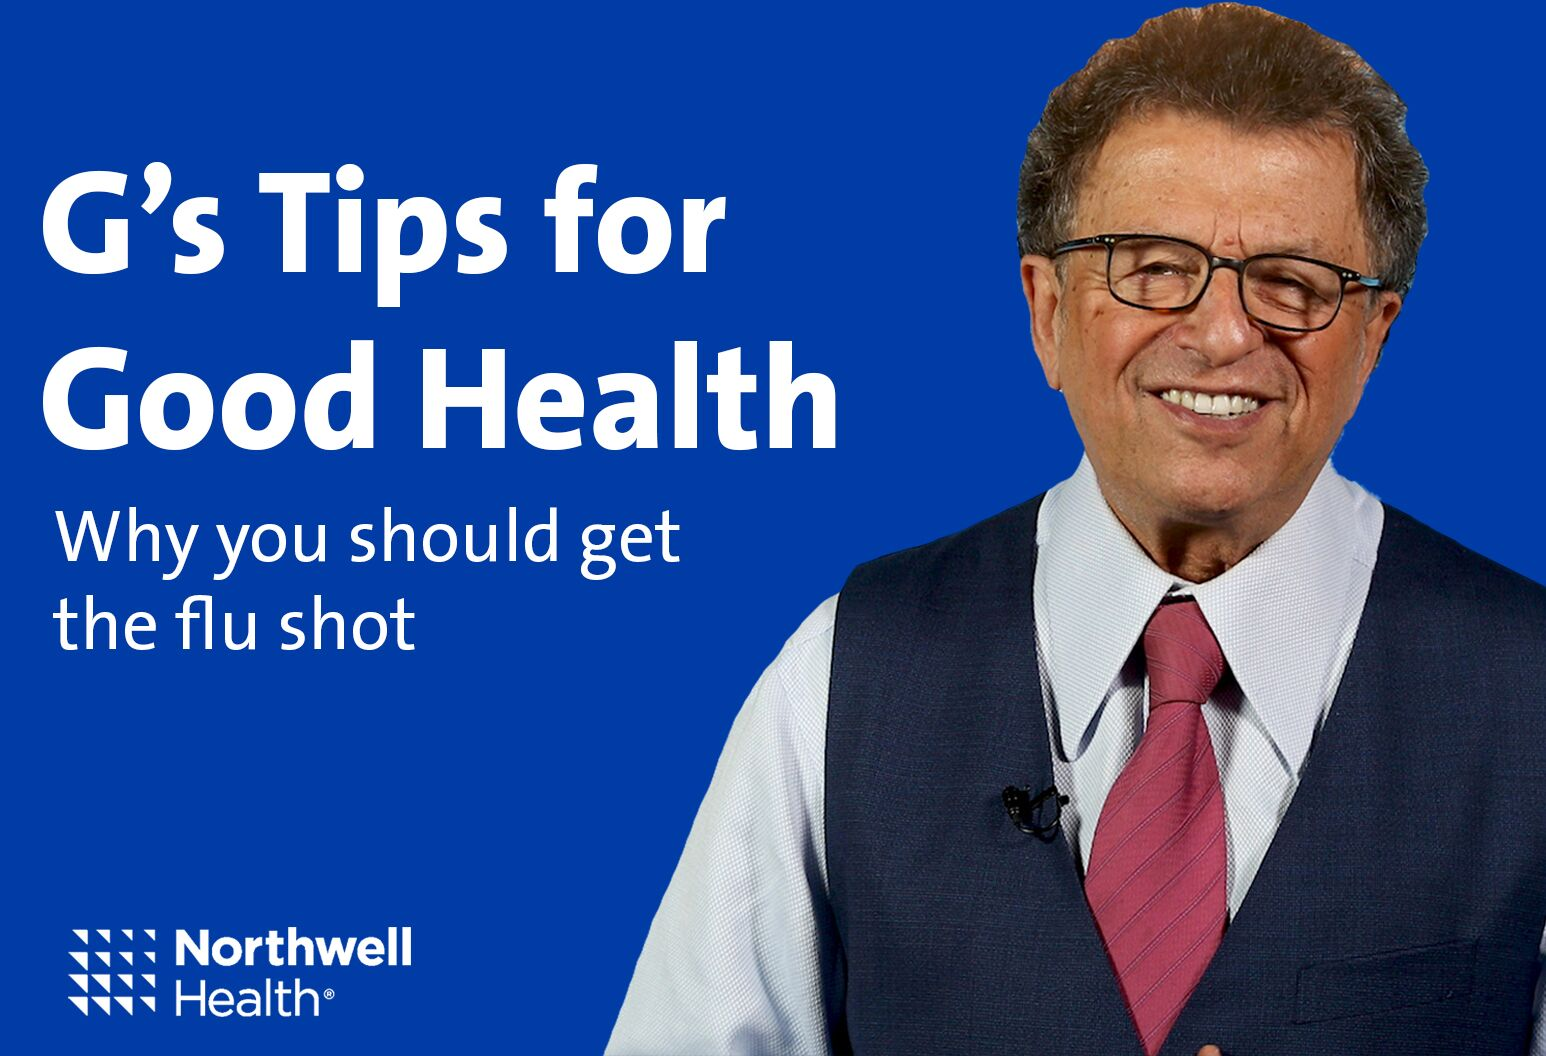 Mr. G Tips for Good Health - Why to get the flu shot.